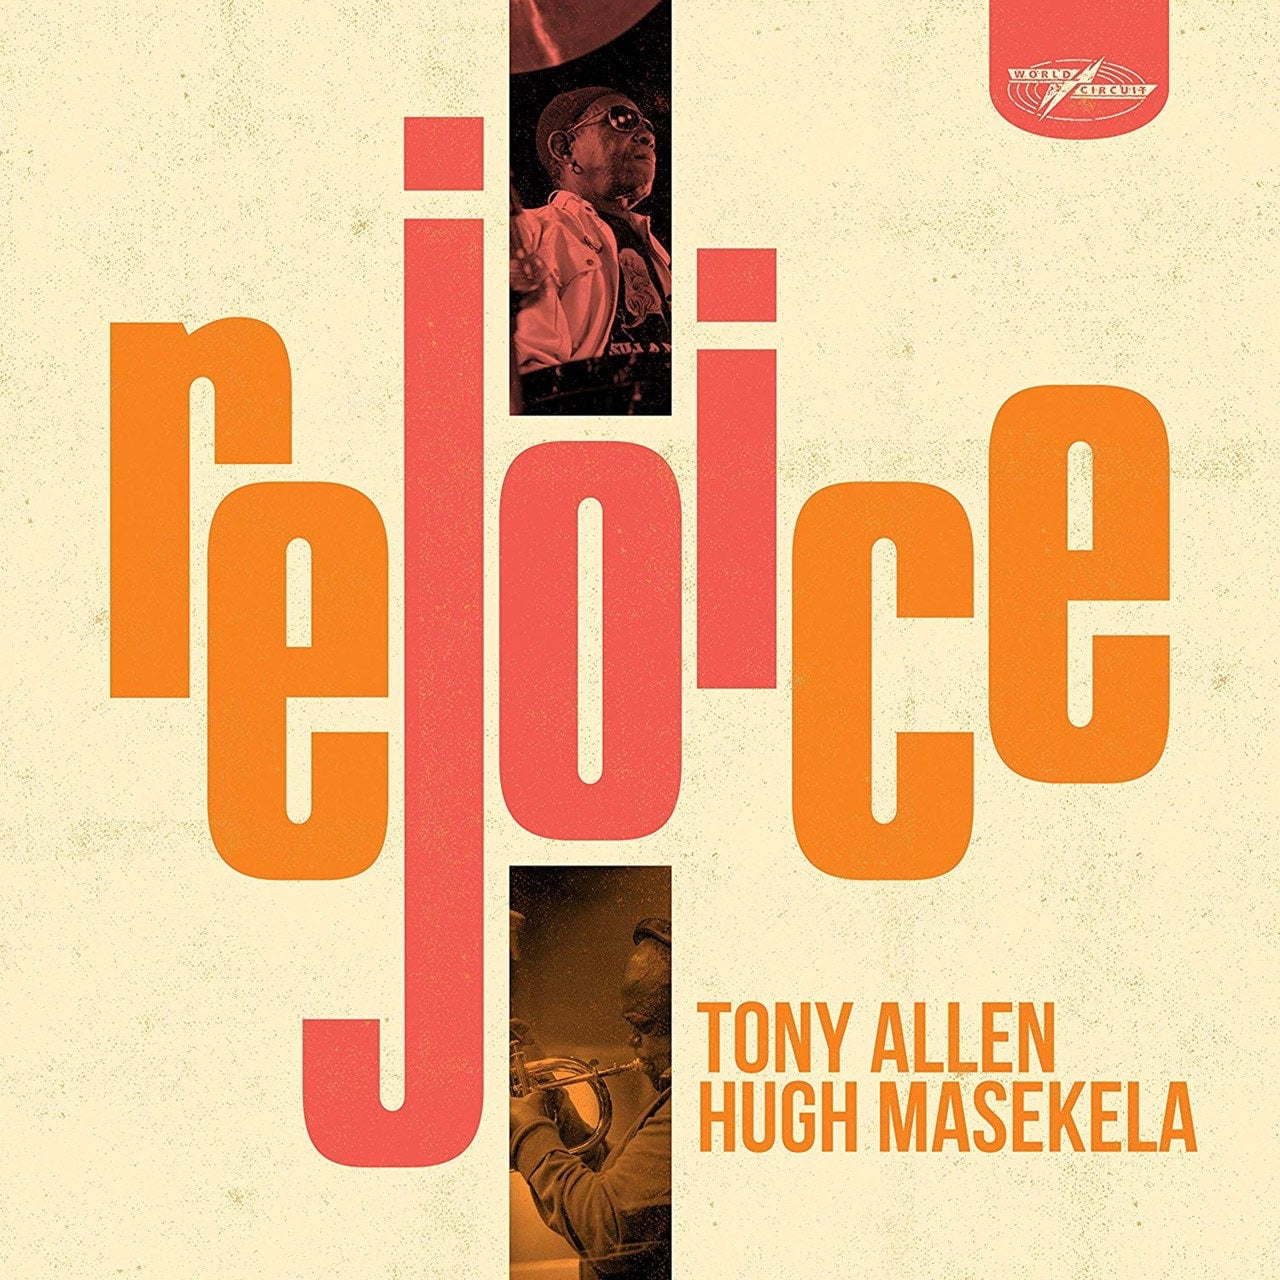 Tony Allen And Hugh Masekela - Rejoice